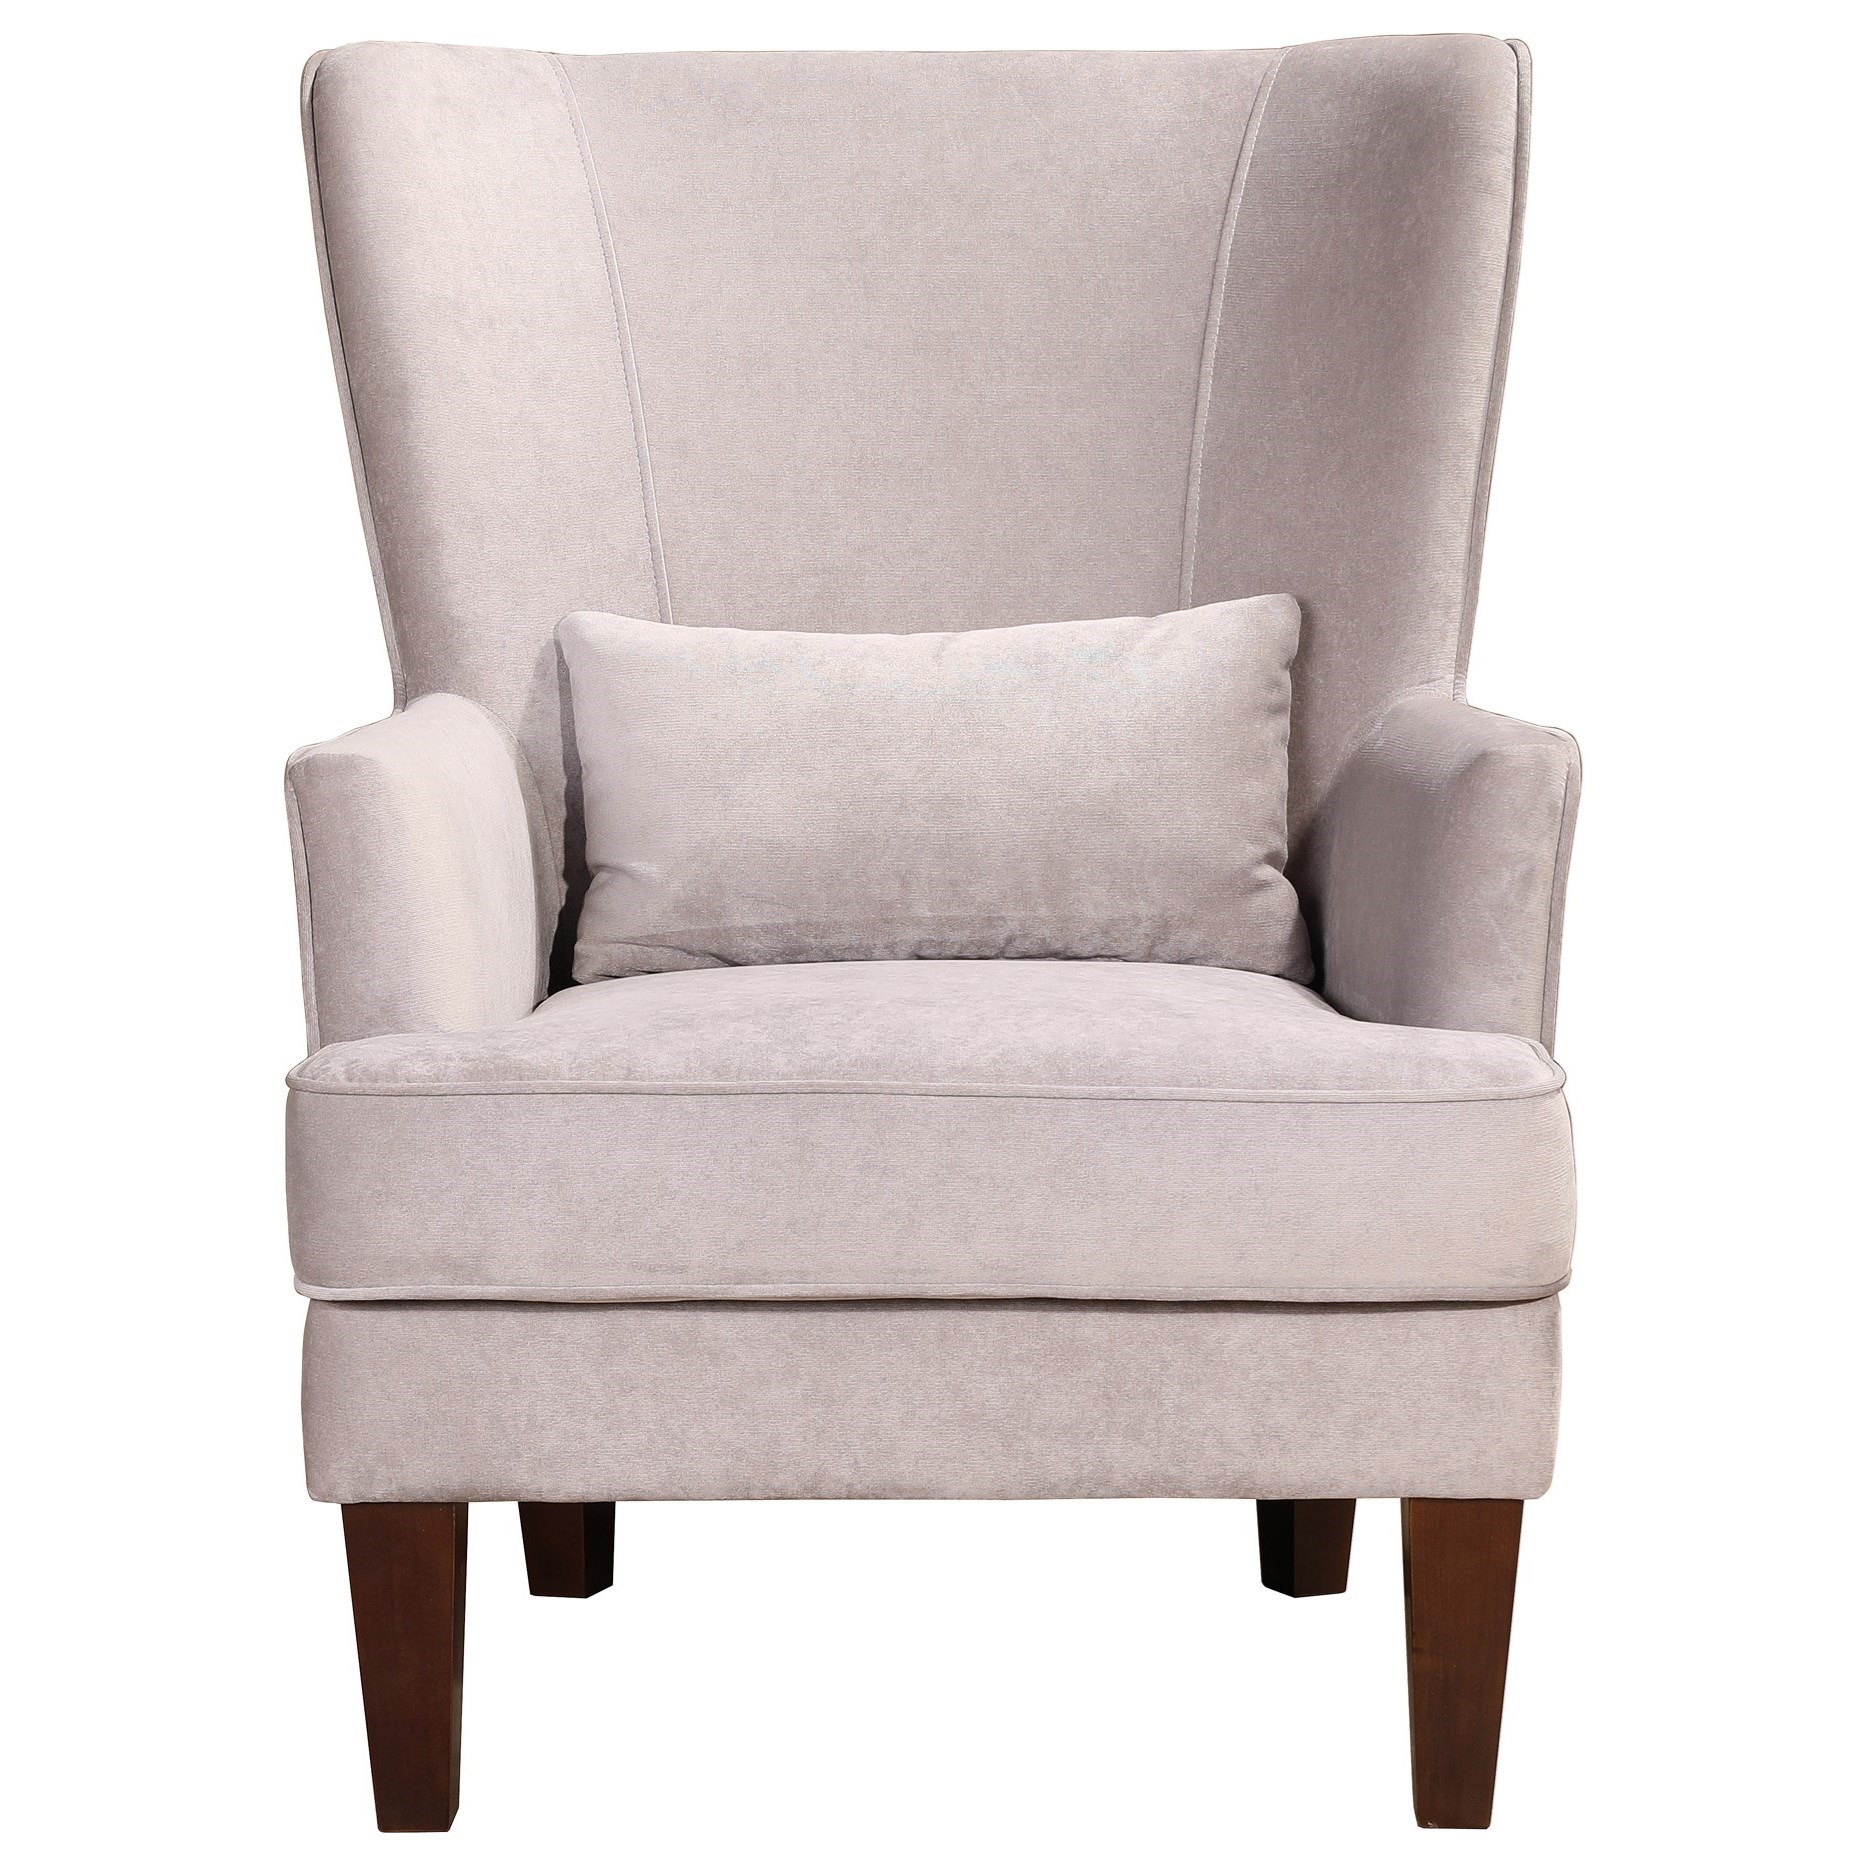 Prince Arm Chair by Moe's Home Collection at Stoney Creek Furniture